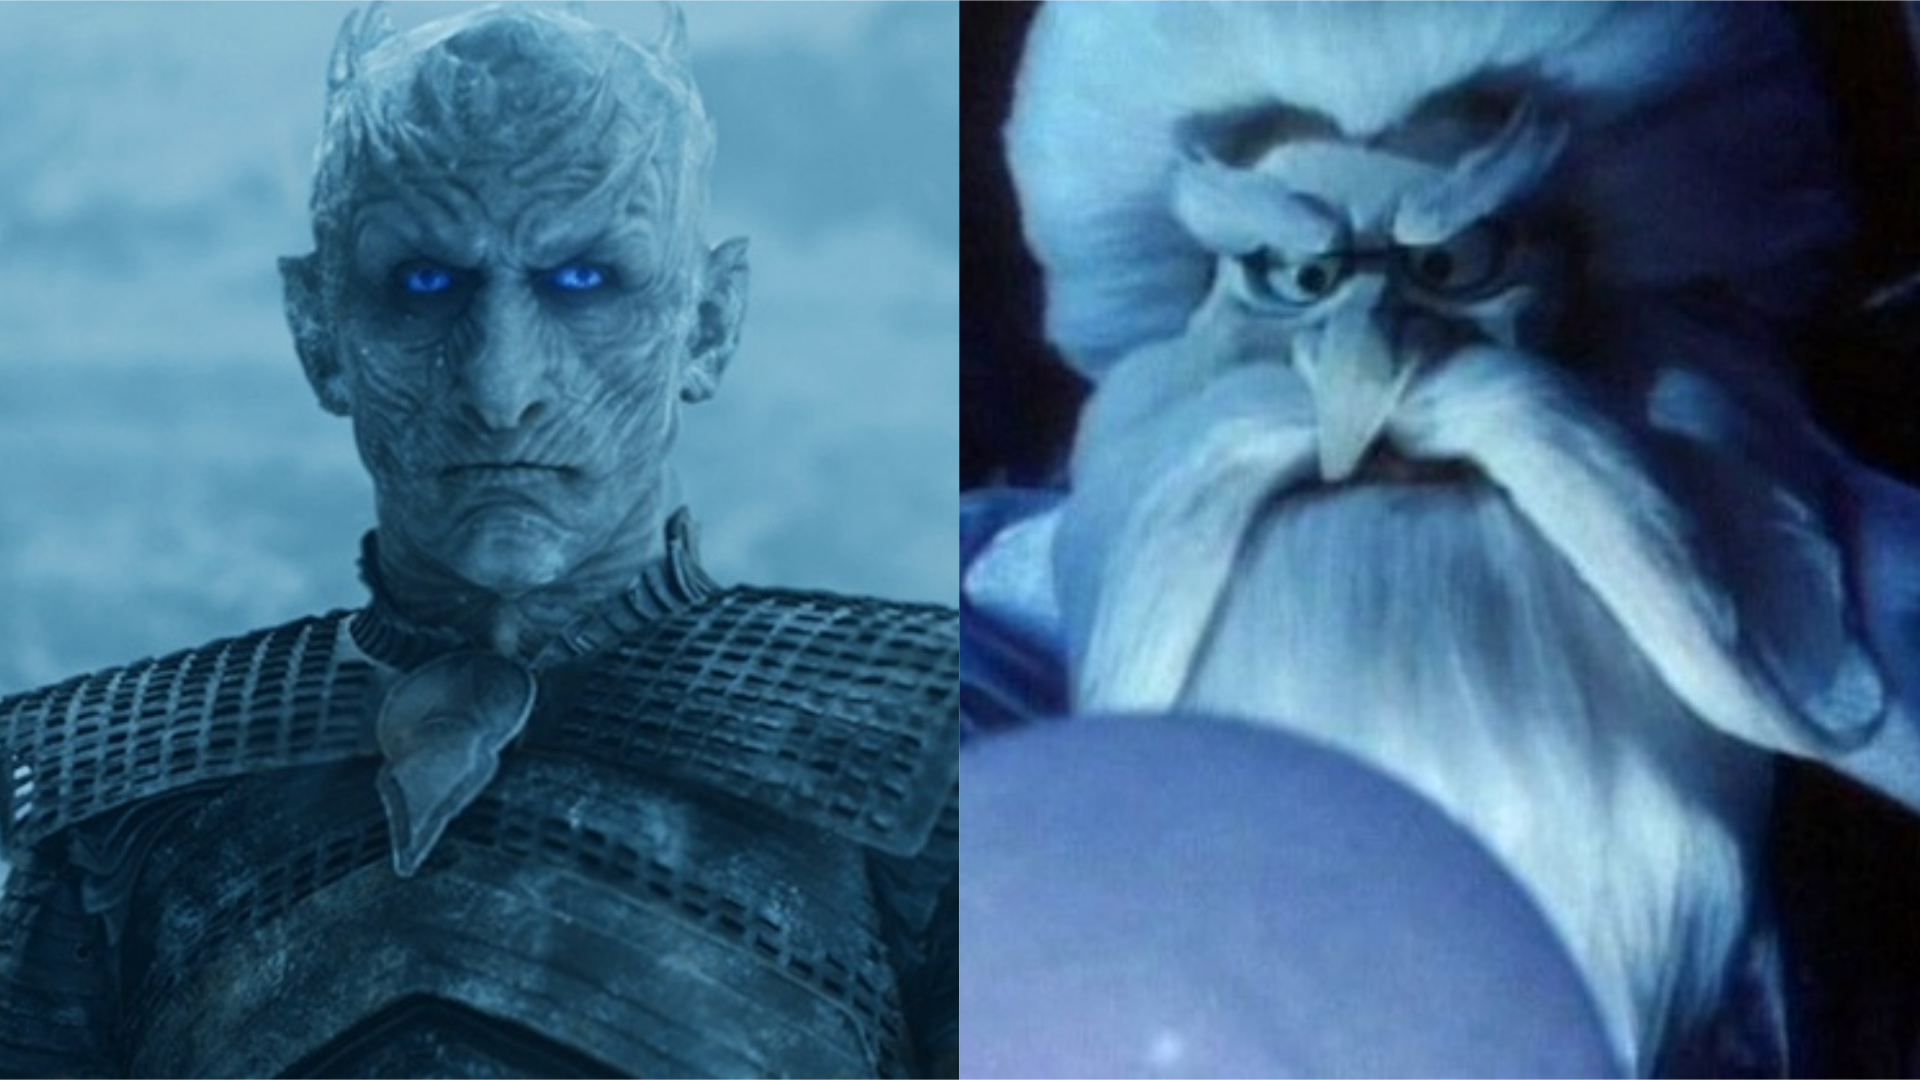 Night King (Pictured Right) and Winterbolt (Left) via HBO and Warner Brothers.